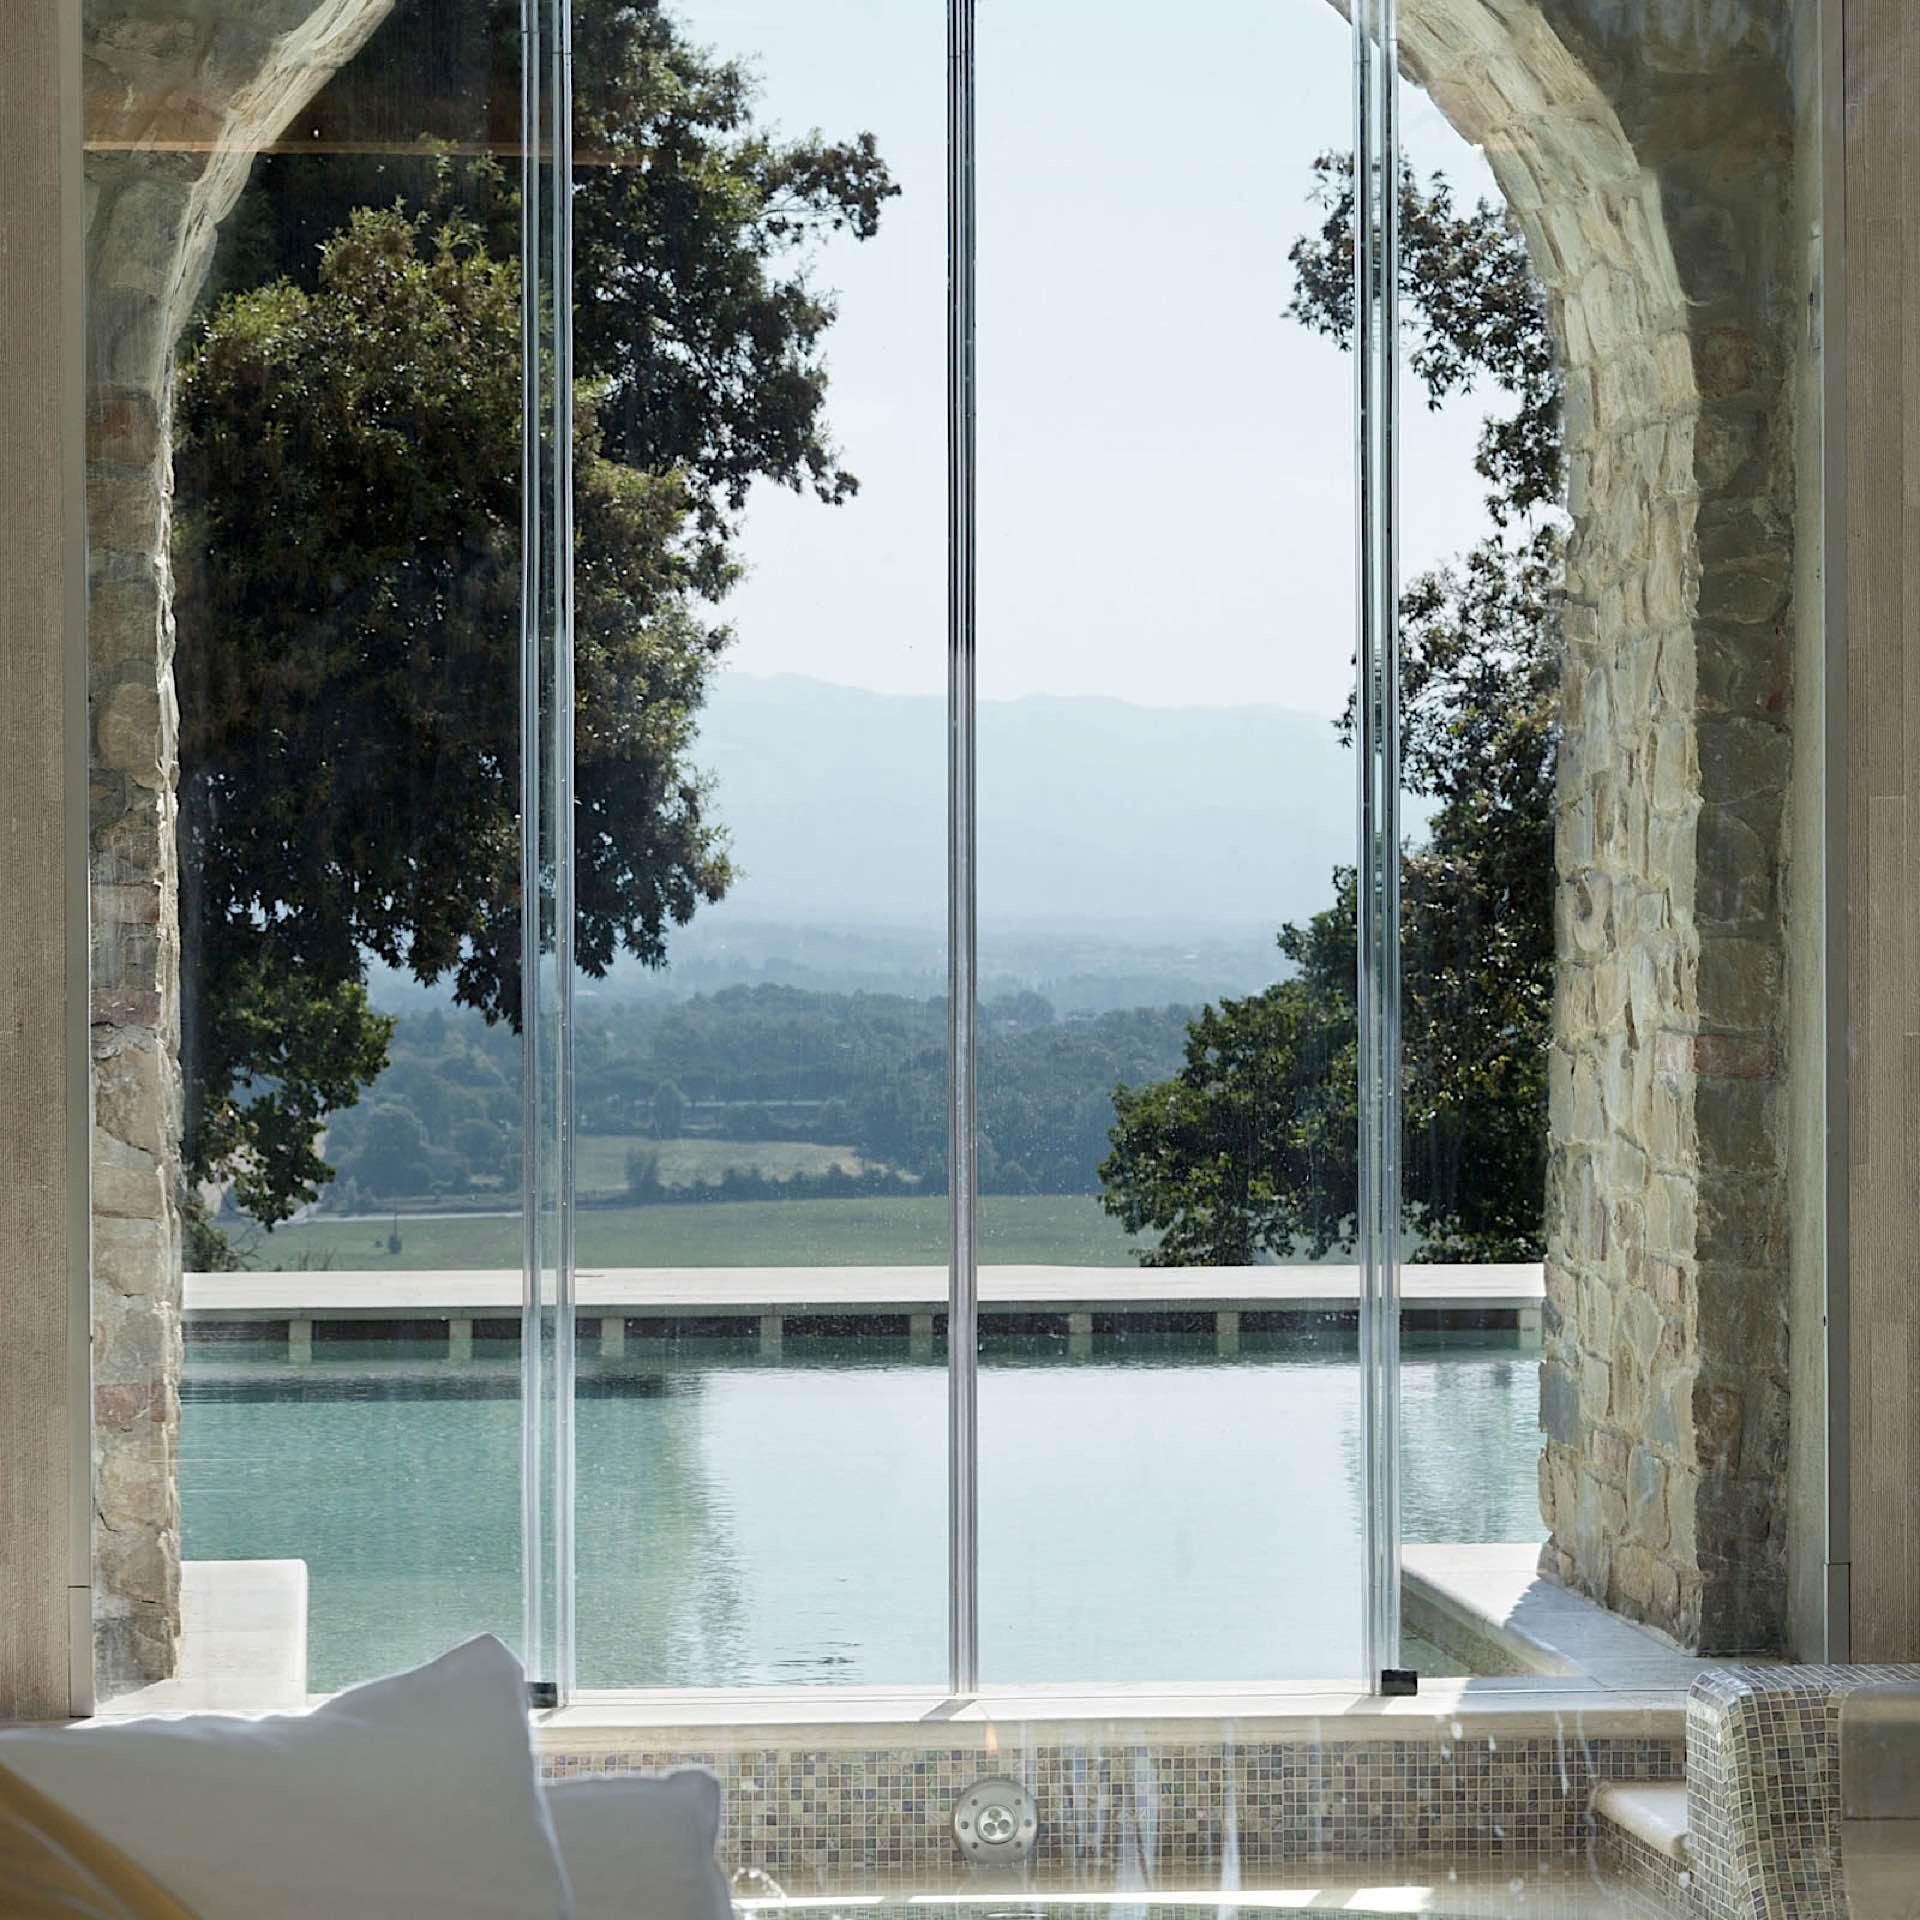 Spa View | Villa Le Maschere